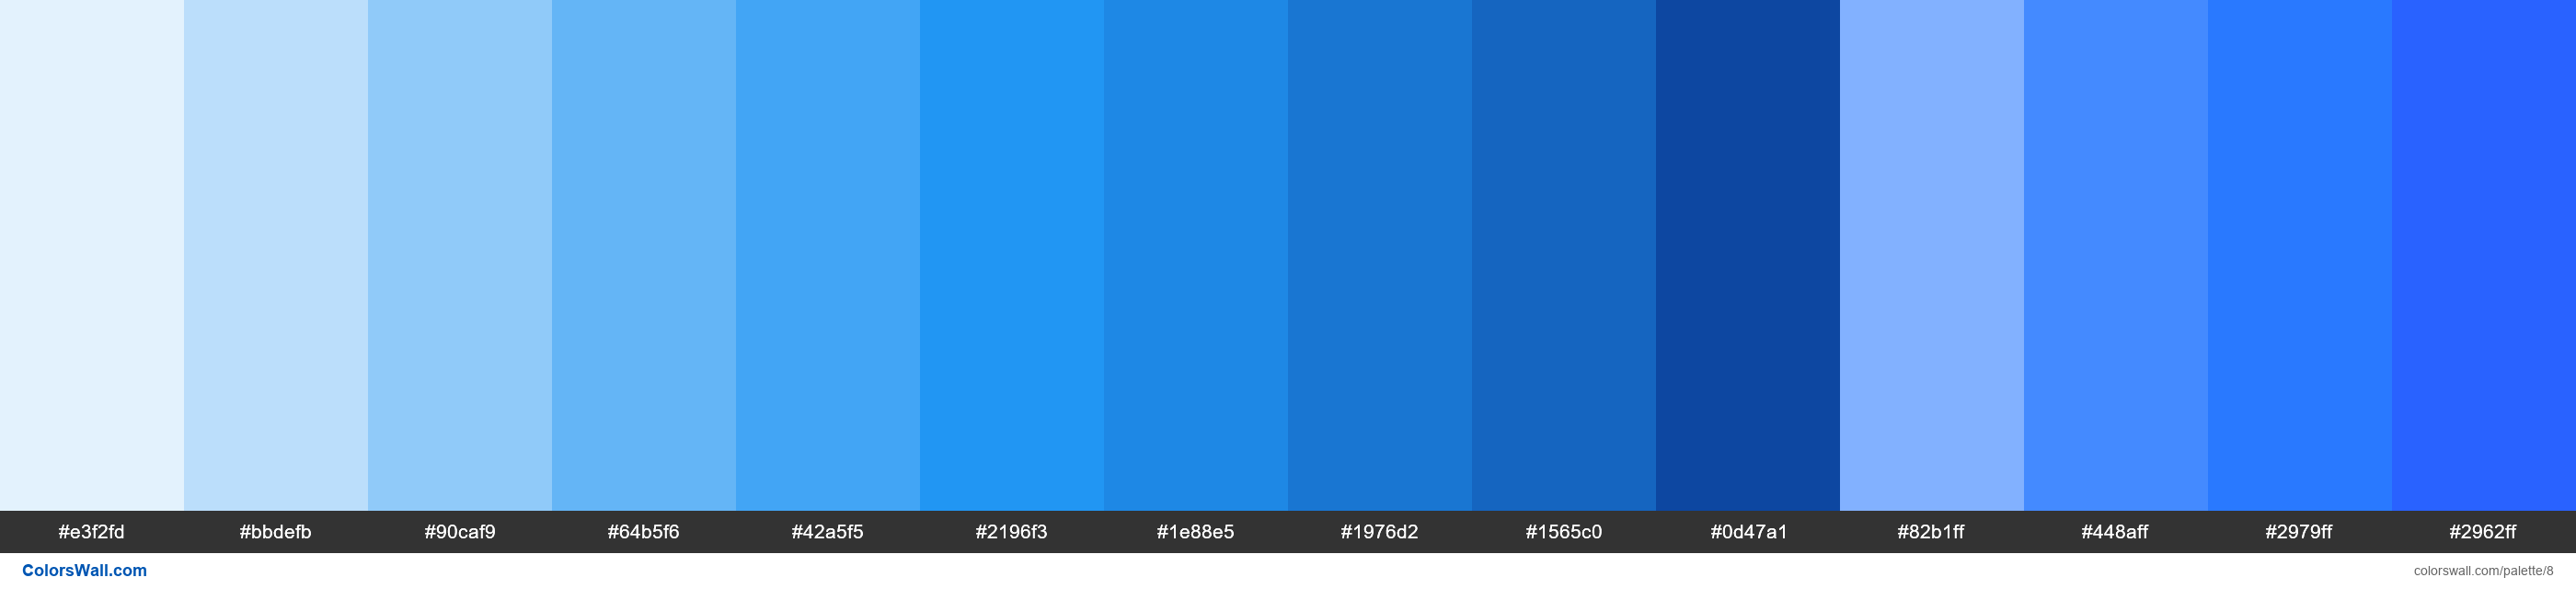 Contact US >> Blue palette Materialize CSS HEX, RGB codes